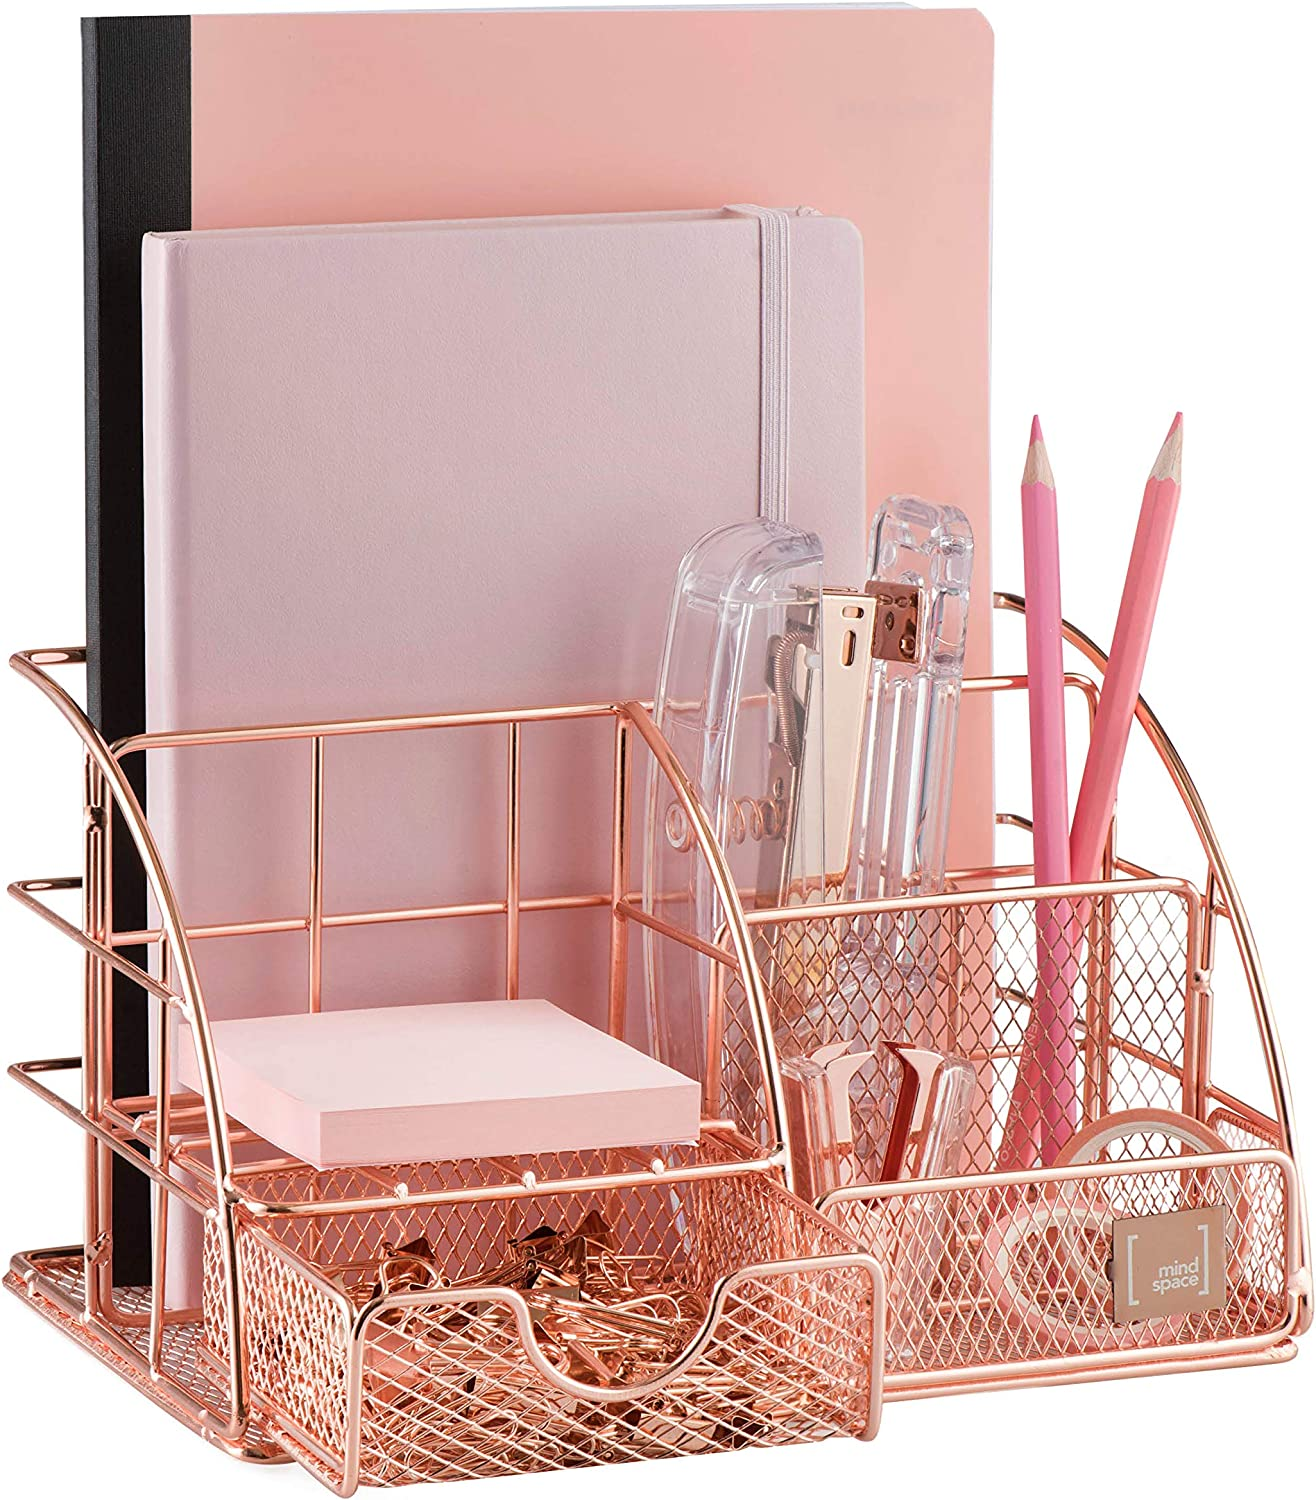 Mindspace Office Desk Organizer with 6 Compartments + Drawer | The Mesh Collection, Rose Gold